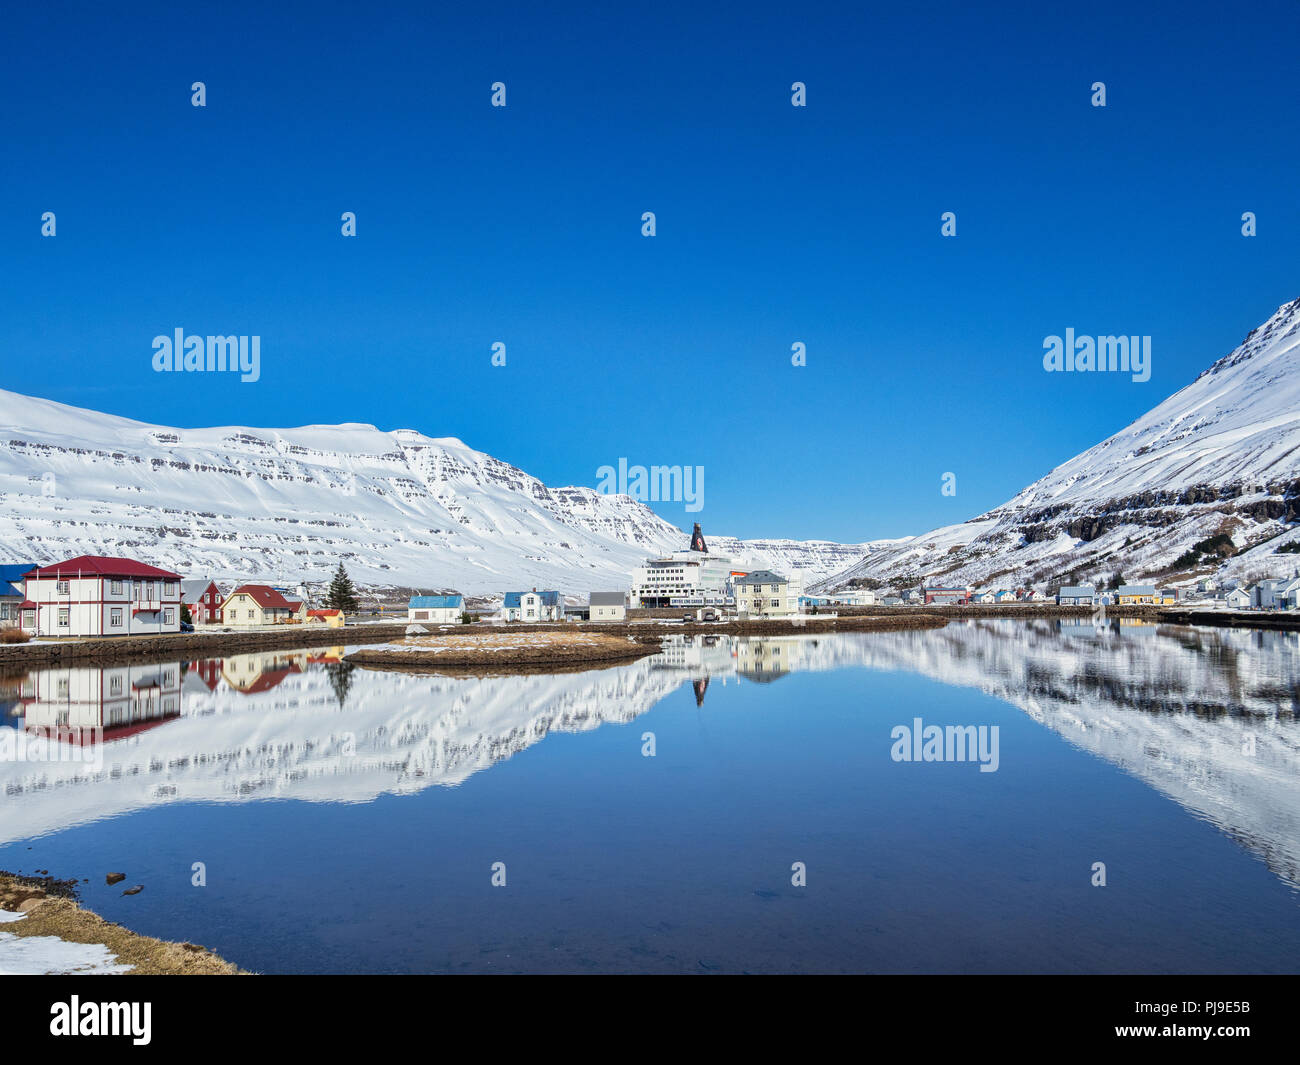 11 April 2018; Seydisfjordur, East Iceland - The village reflected in the fiord, and the Smyril Line ferry MS Norrona. - Stock Image